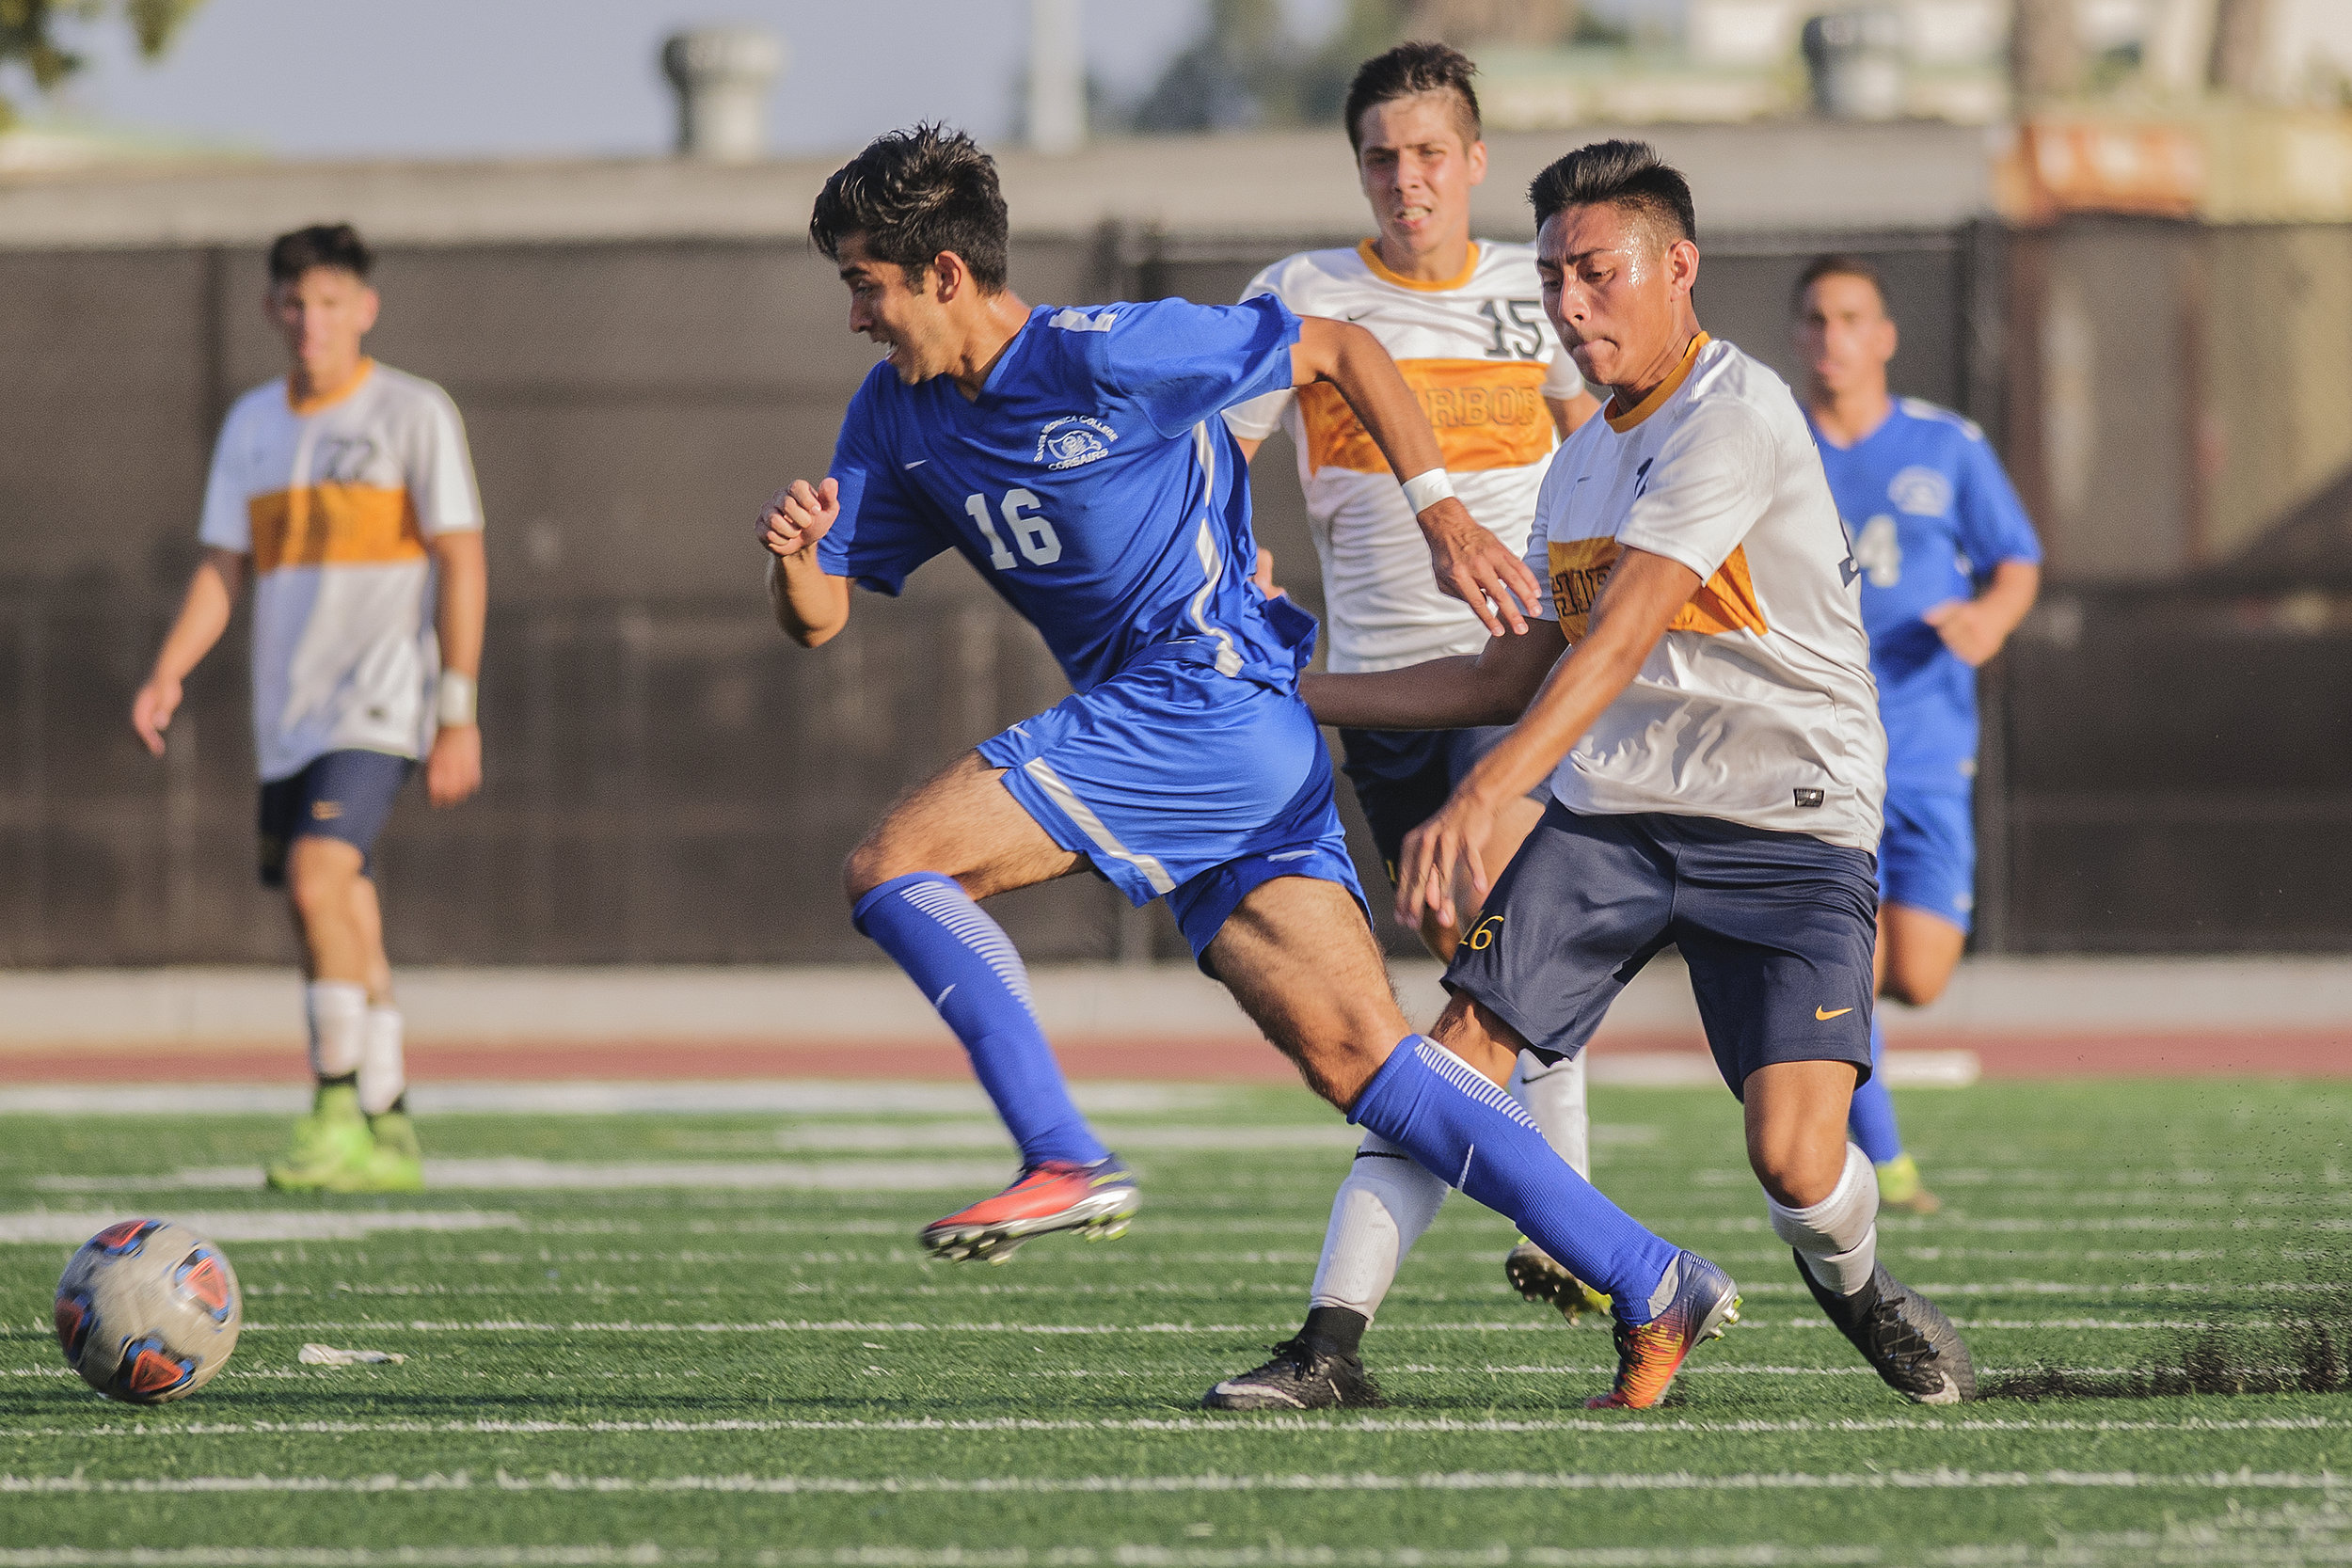 Left Carlos Rincon from the Santa Monica College mens soccer team dribbles the soccer ball around Michael Garcia from the Los Angeles Harbor College mens soccer team in white at corsair field located on the campus of smc on Tuesday September 19th 2017 as SMC hosted Harbor College in a non league soccer match and won 4-1 to remain undefeated this season with a record of 5 wins and 1 tie. Watching on behind the two of them is Garcia's teammate Roberto Gerardo